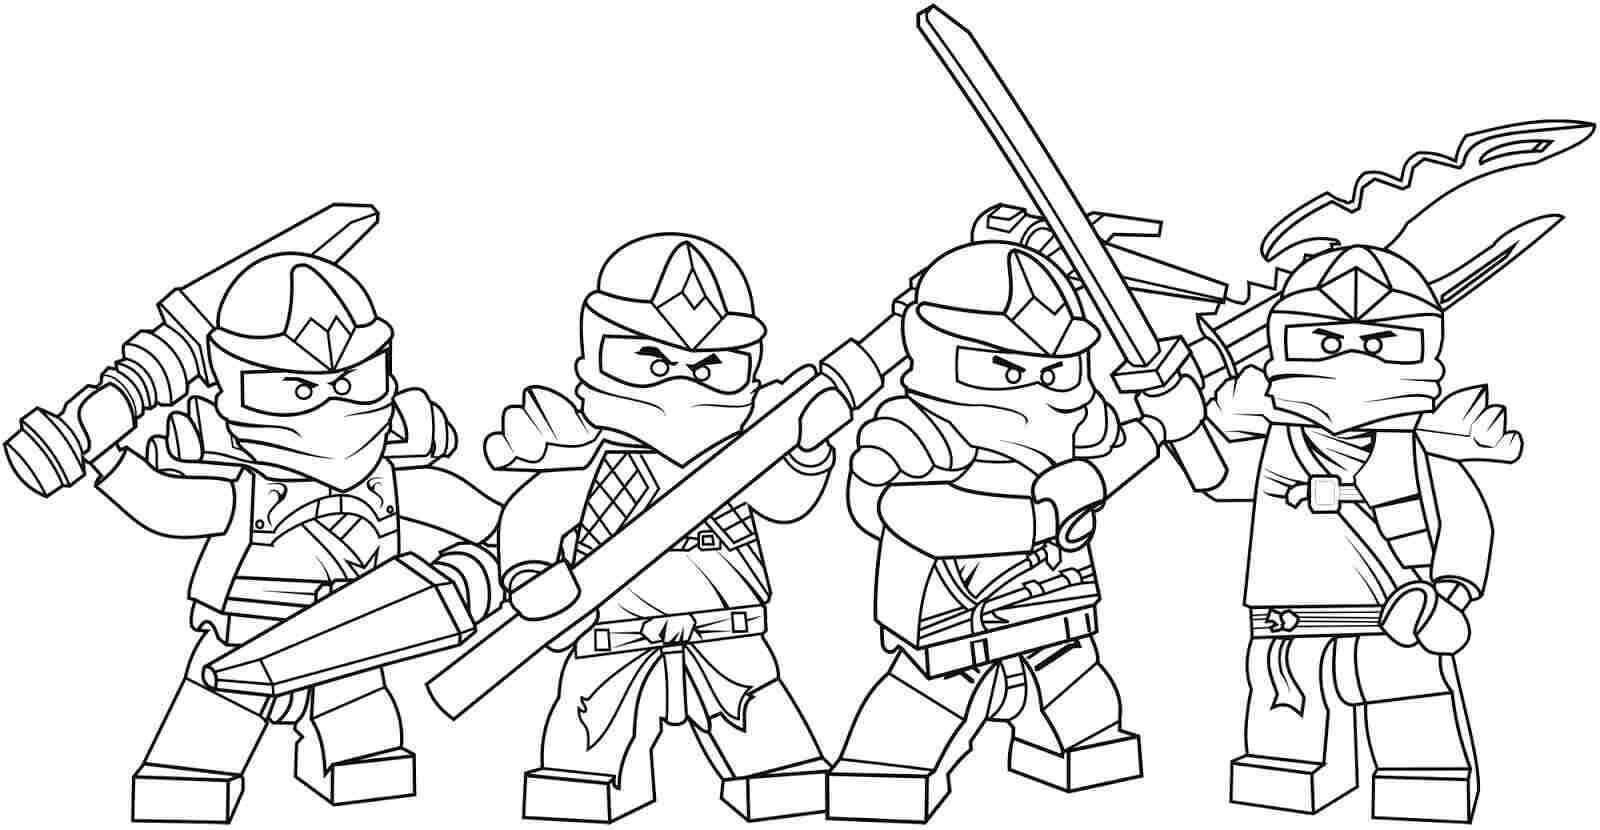 free ninja star coloring pages - photo#30